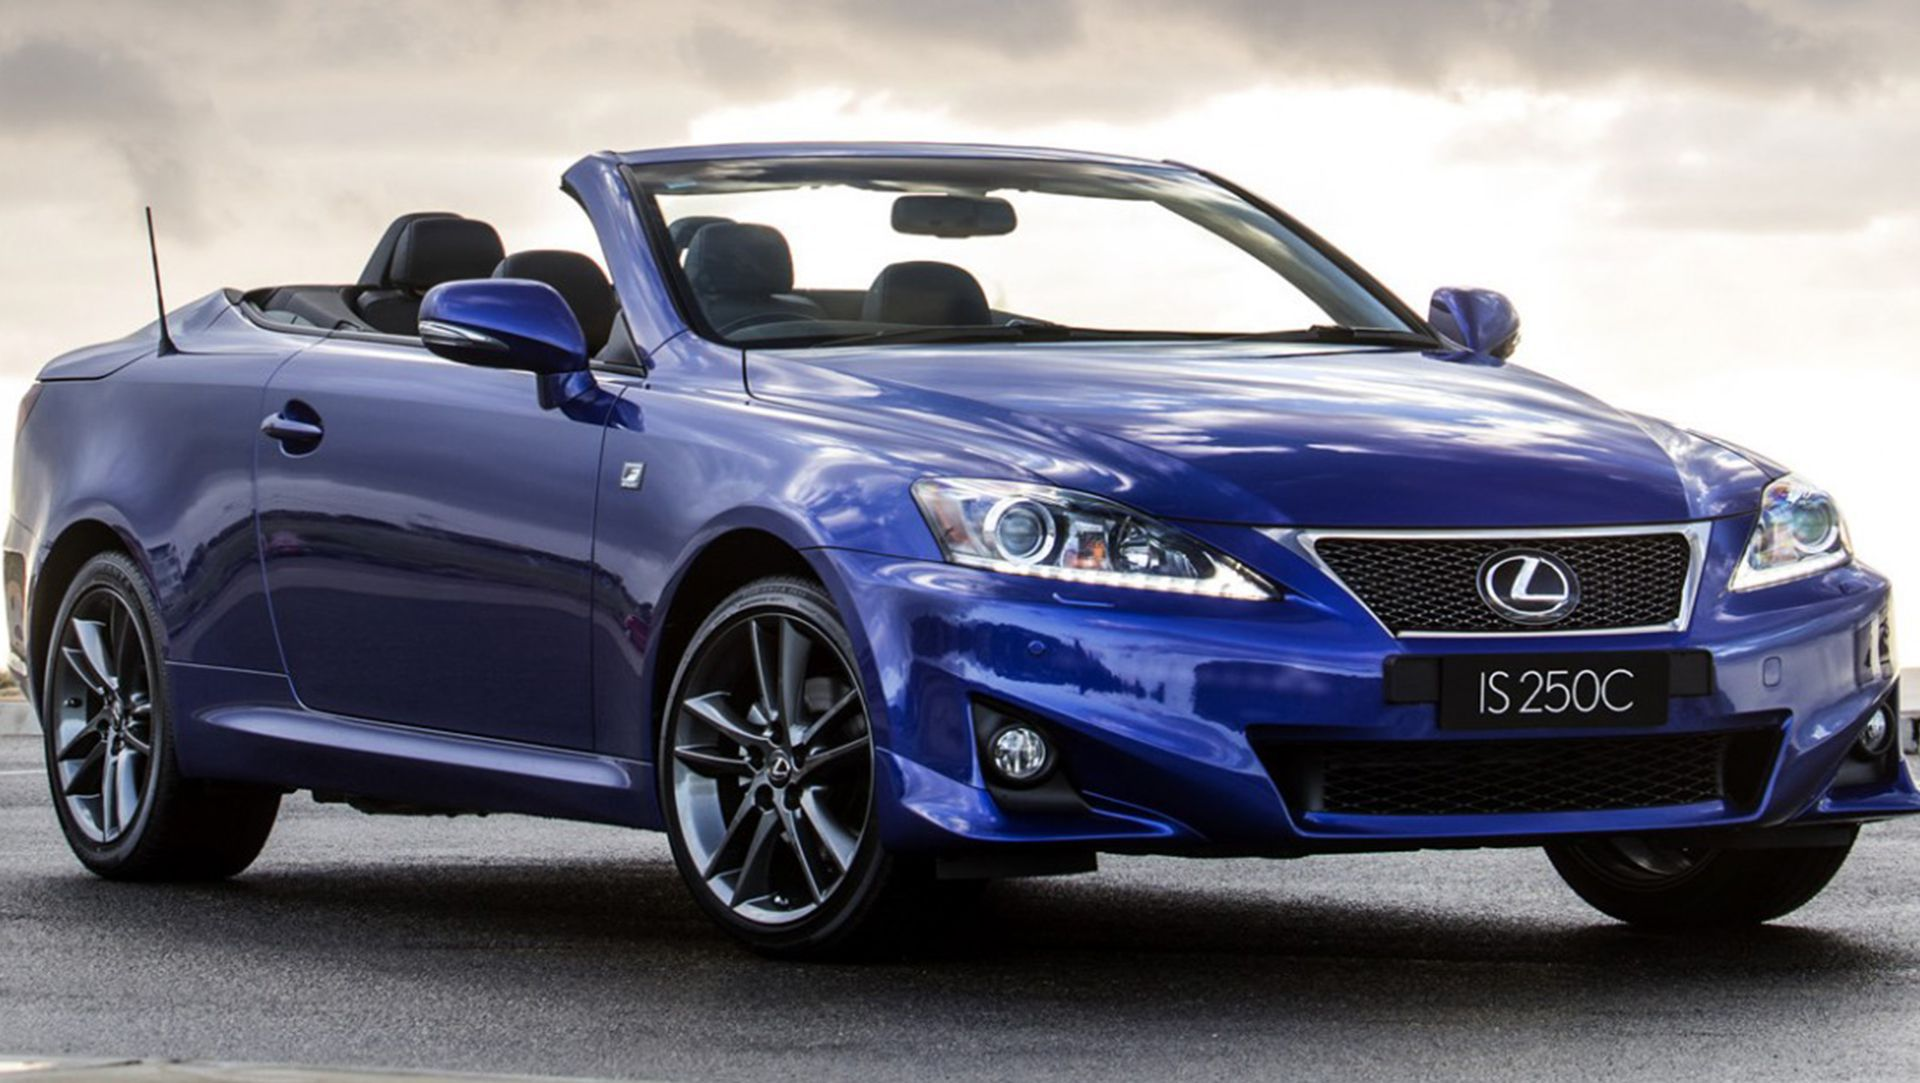 Lexus IS C Convertible Returns for 2015 Model Year